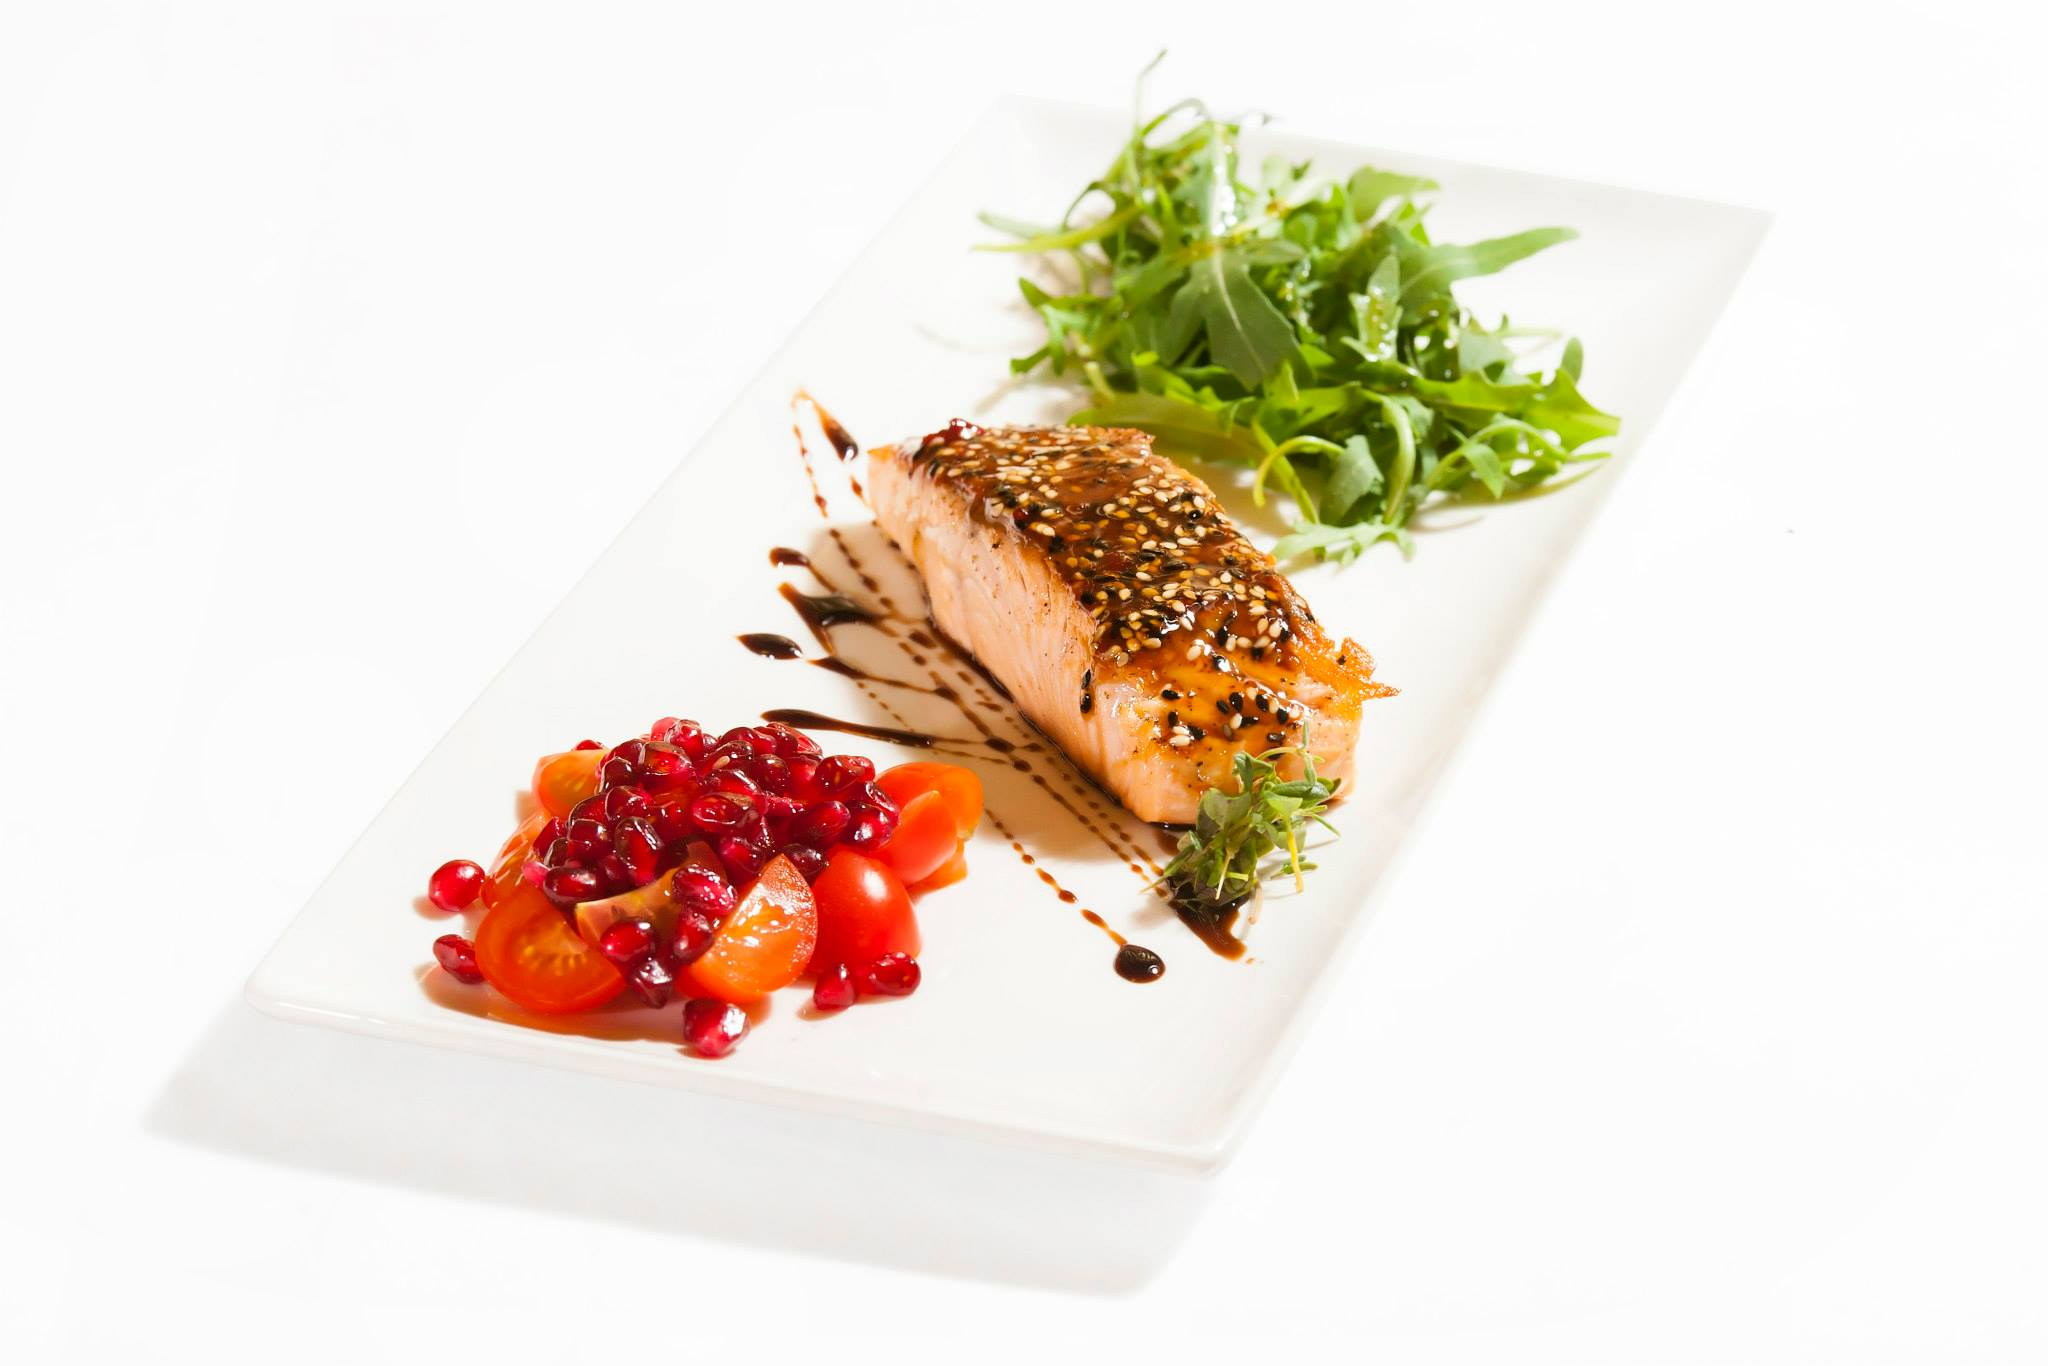 Grilled salmon with rucola salad with pomegranate and lemon grass sauce